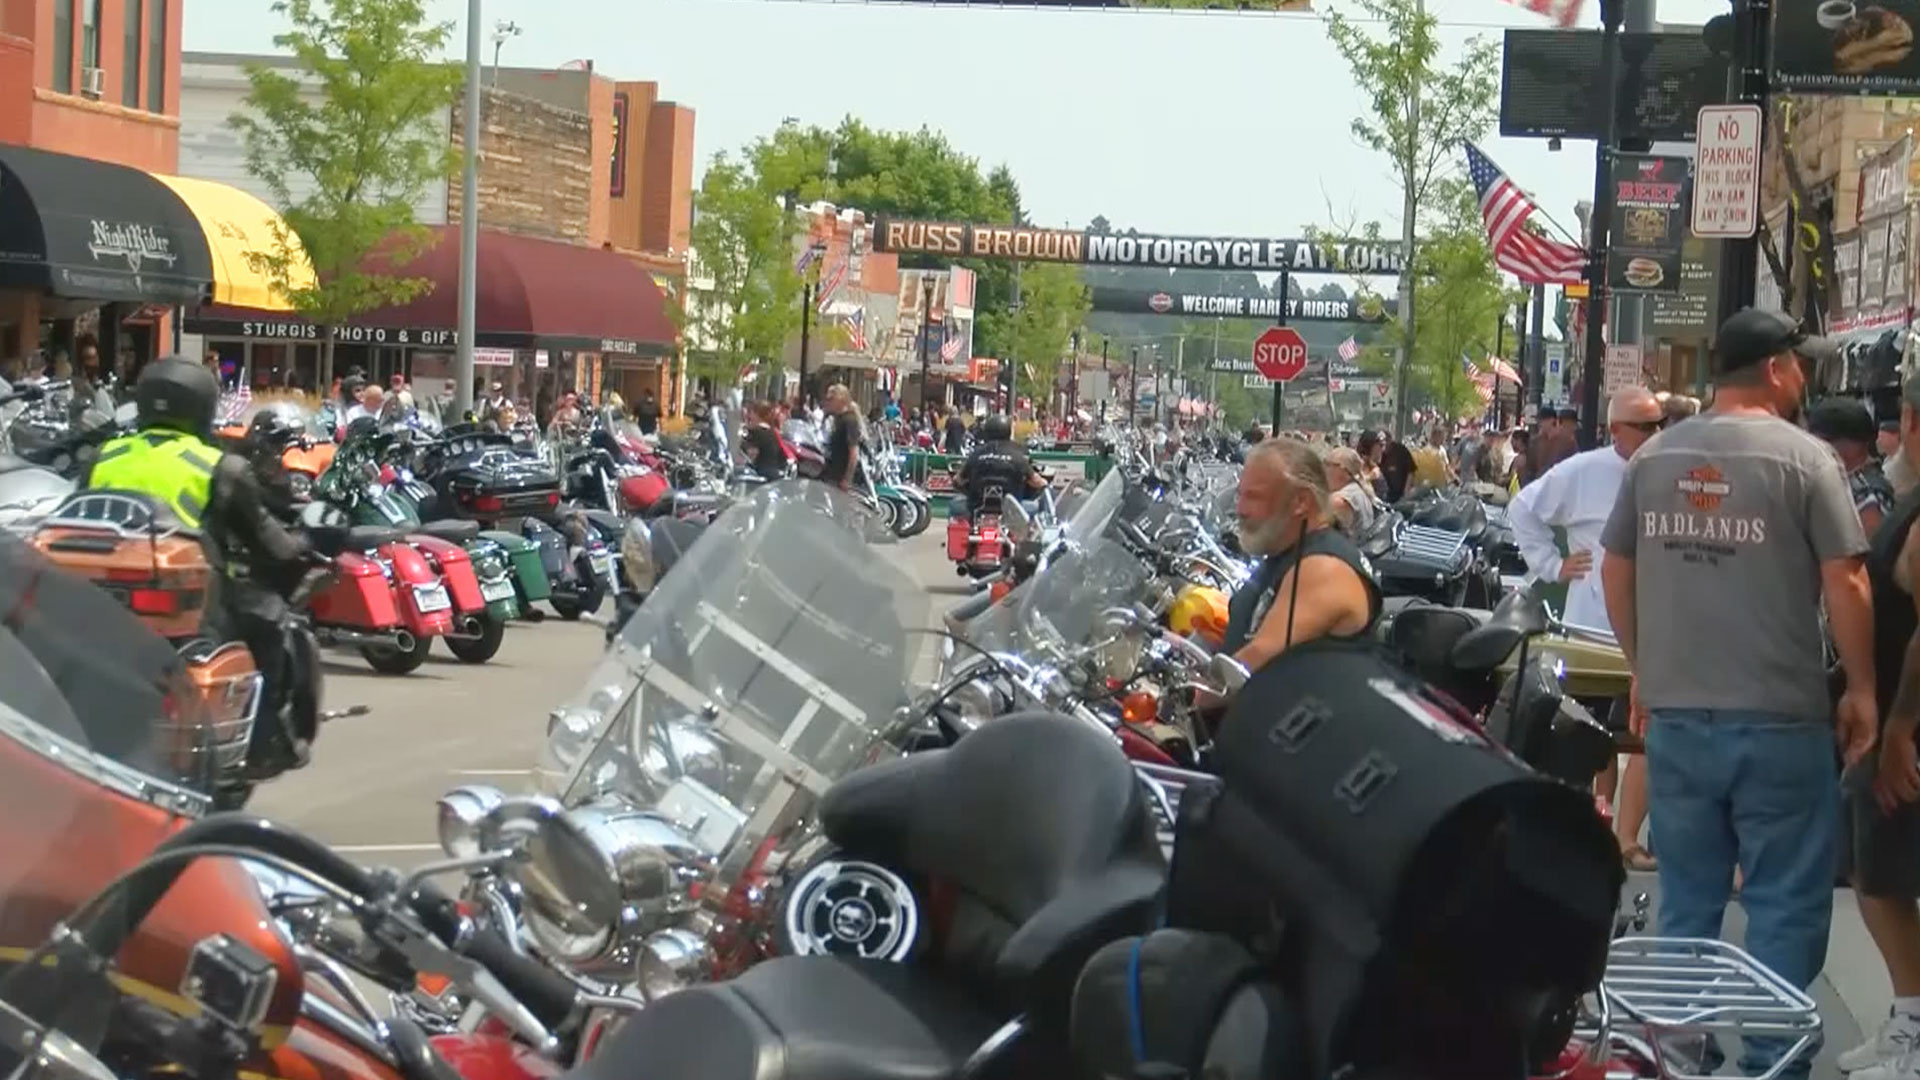 A Minnesota man who attended the Sturgis Motorcycle Rally in South Dakota last month has died from COVID-19